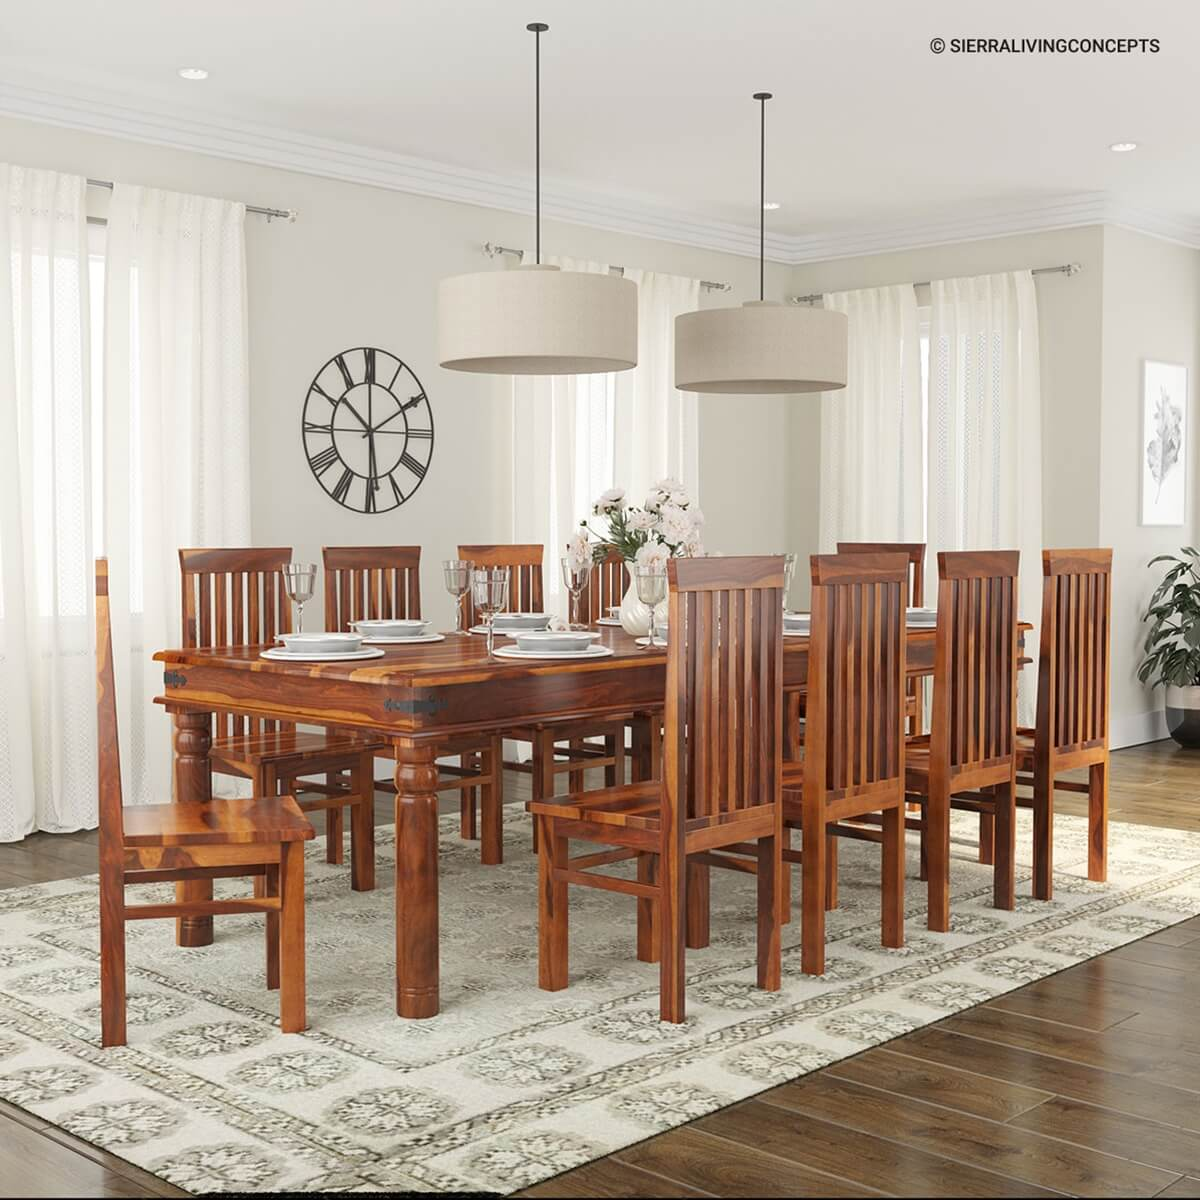 Rustic Lincoln Study Large Dining Room Table Chair Set For